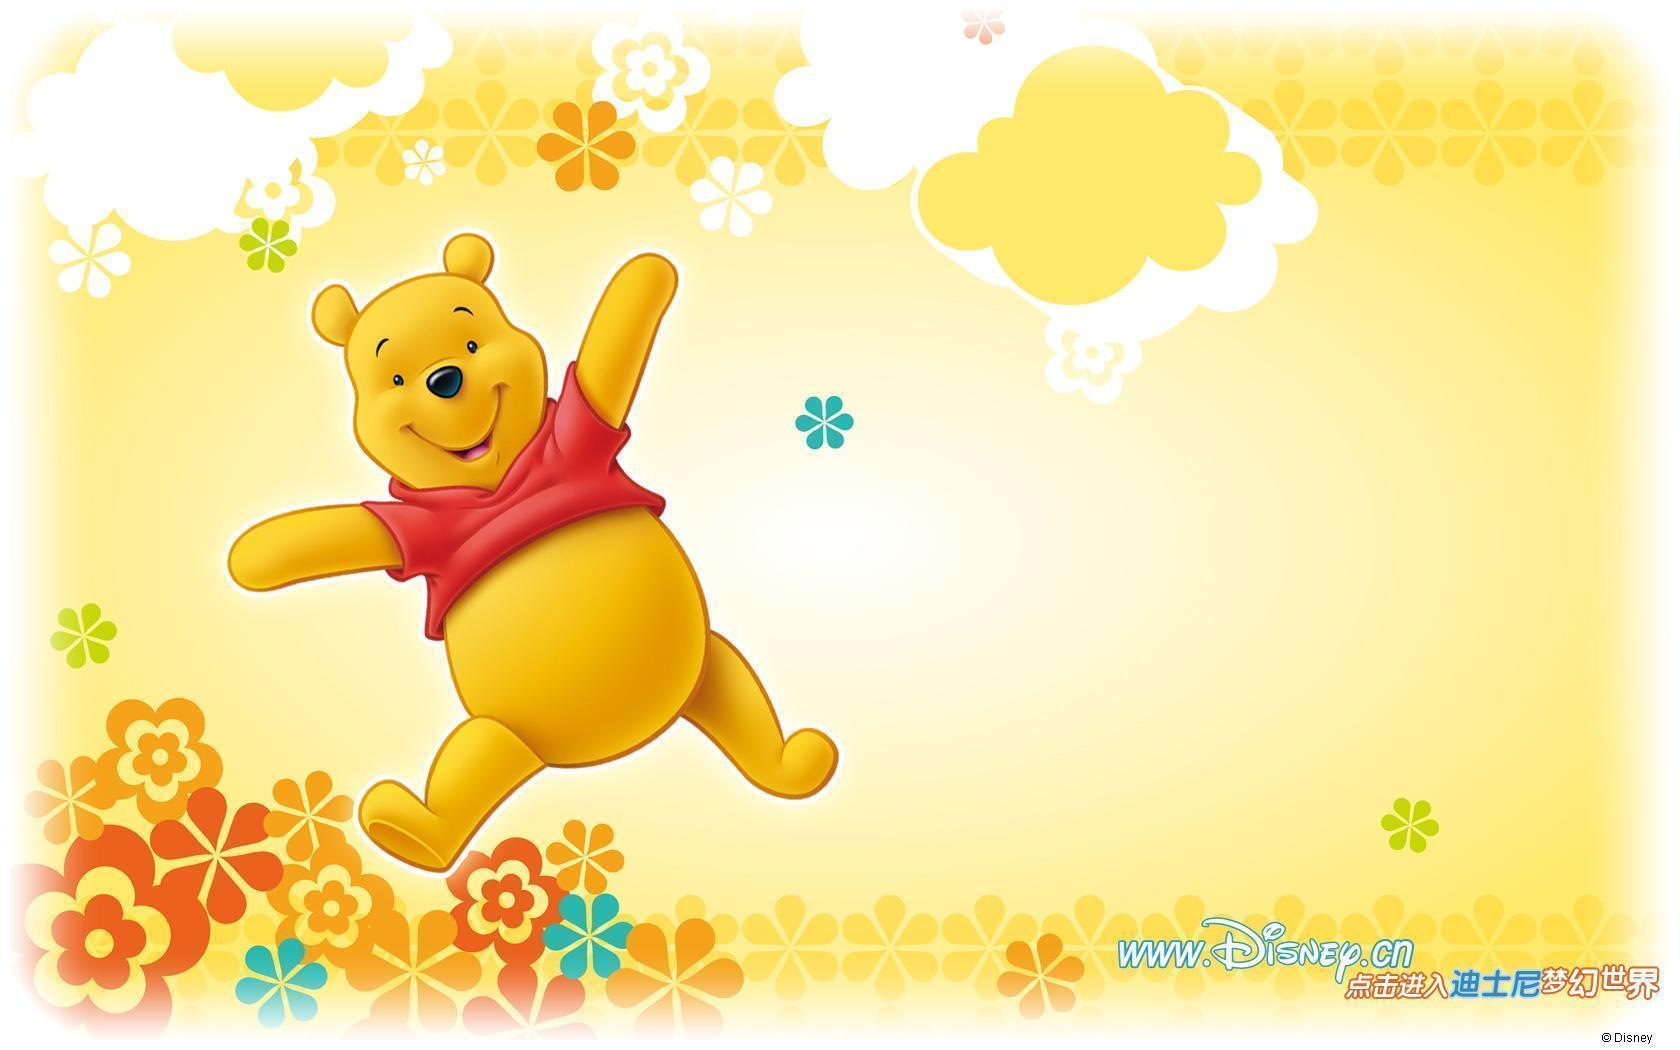 Wallpapers For > Winnie The Pooh Wallpaper Quotes